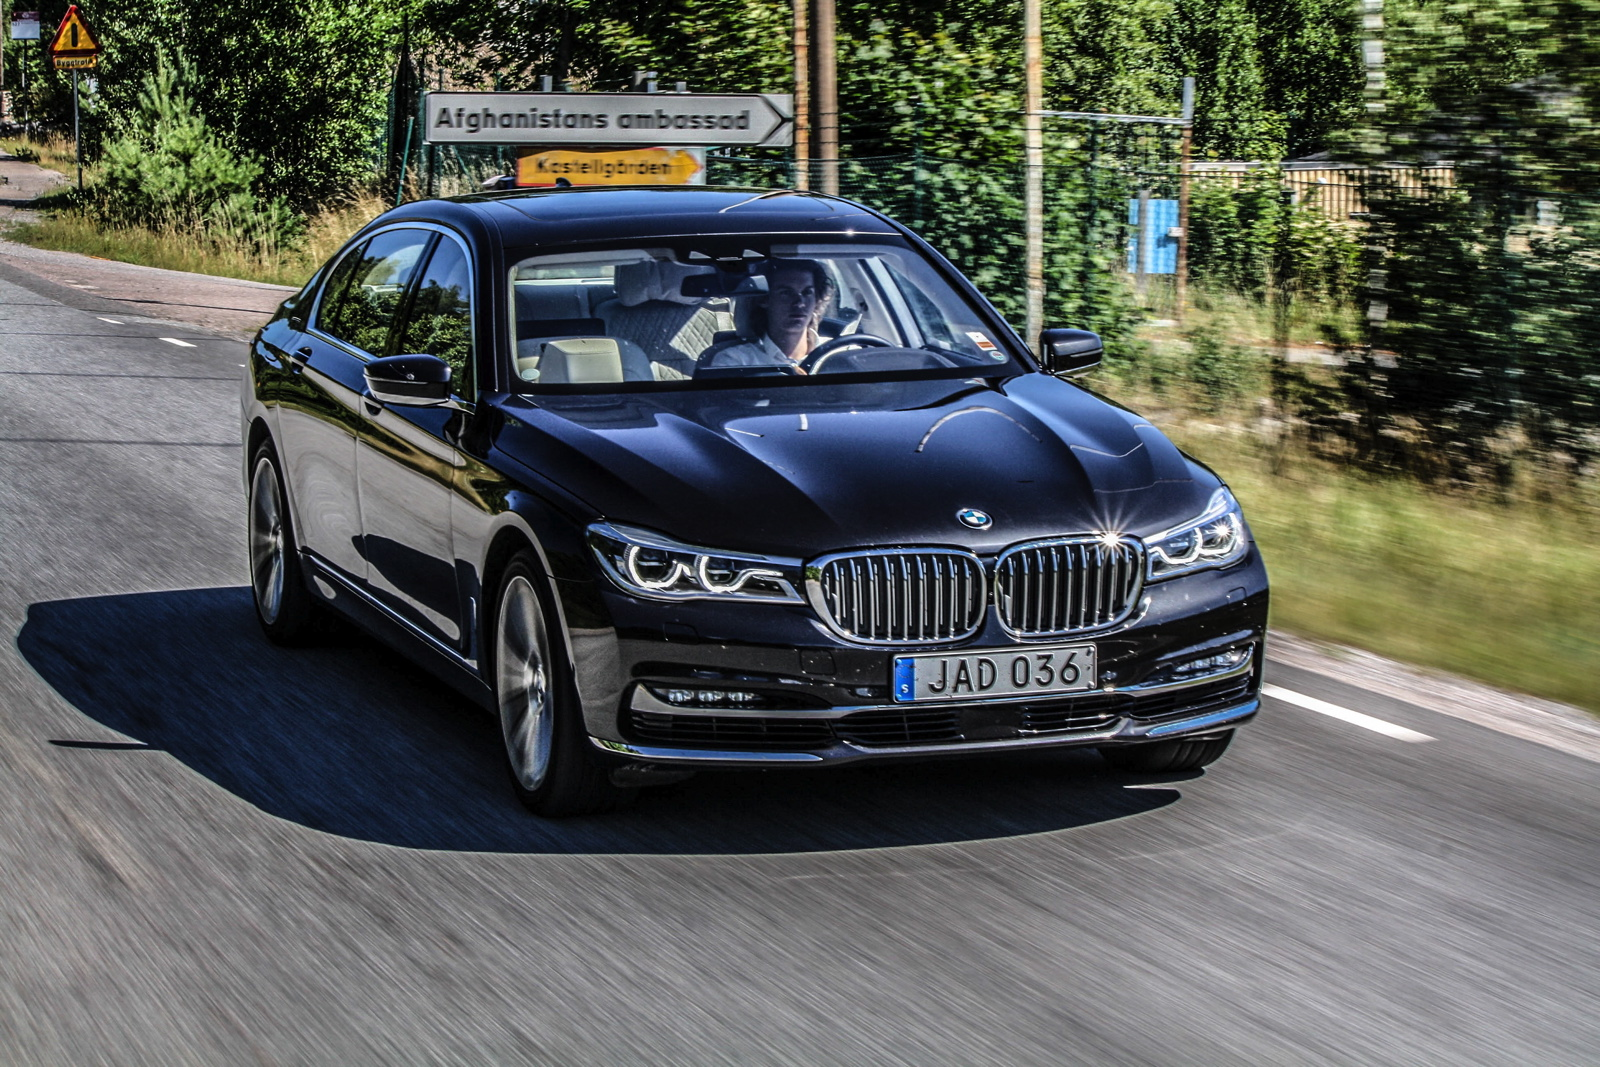 Bmw 7 Series Best Luxury Cars: A Day Of Luxury: 24 Hours In The BMW 750Li